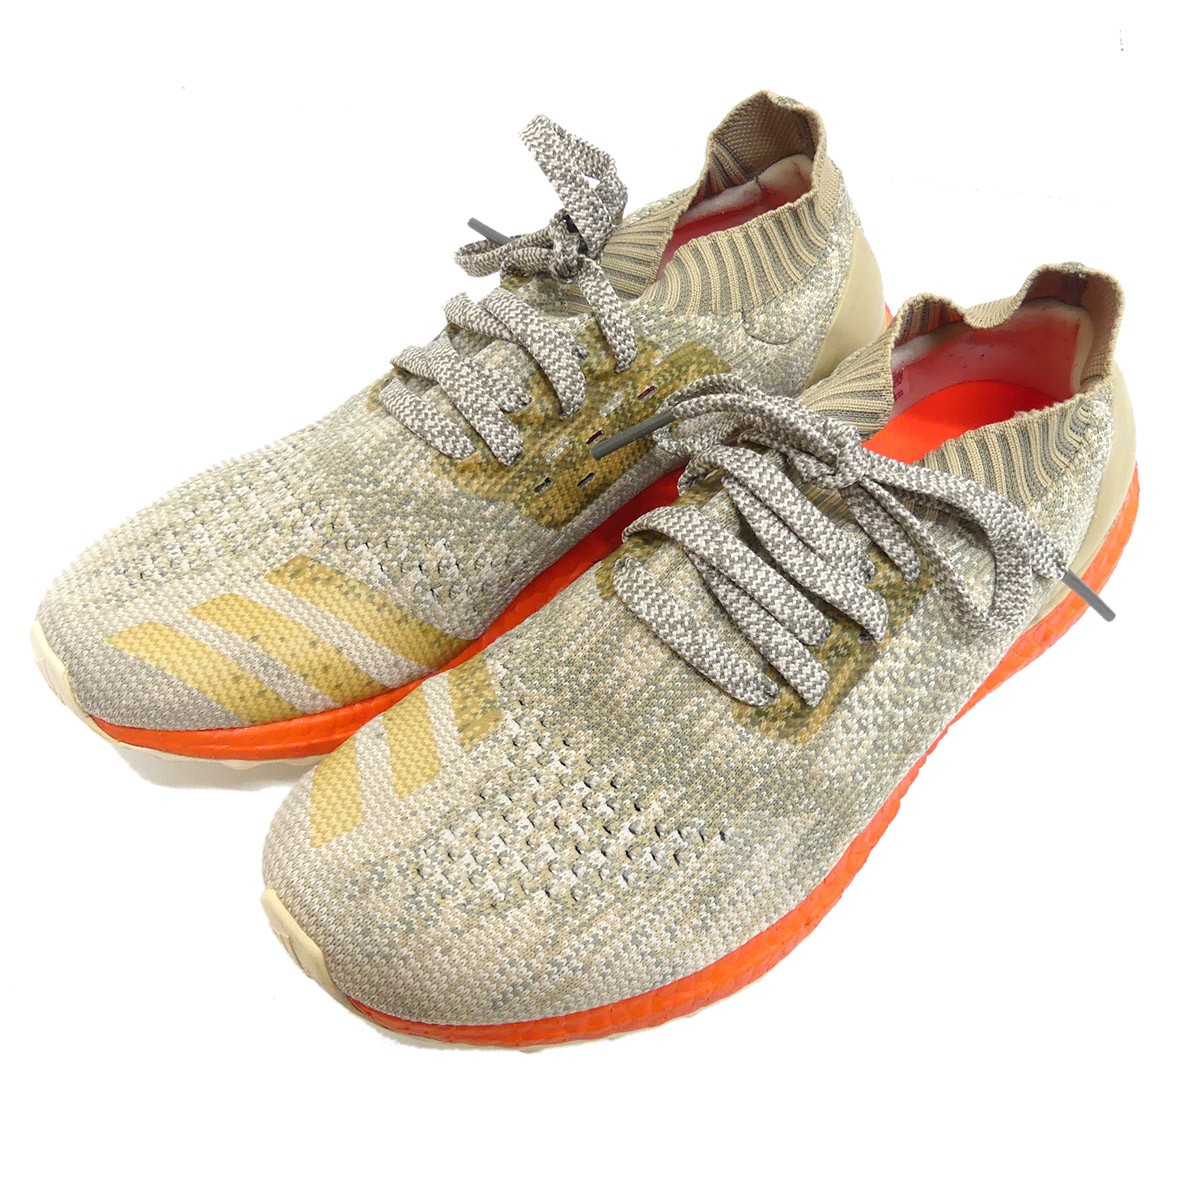 design intemporel 9d2a4 e6631 ADIDAS ORIGINALS ULTRA BOOST UNCAGED CL sneakers S82064 beige size: 27. 5cm  (Adidas originals)